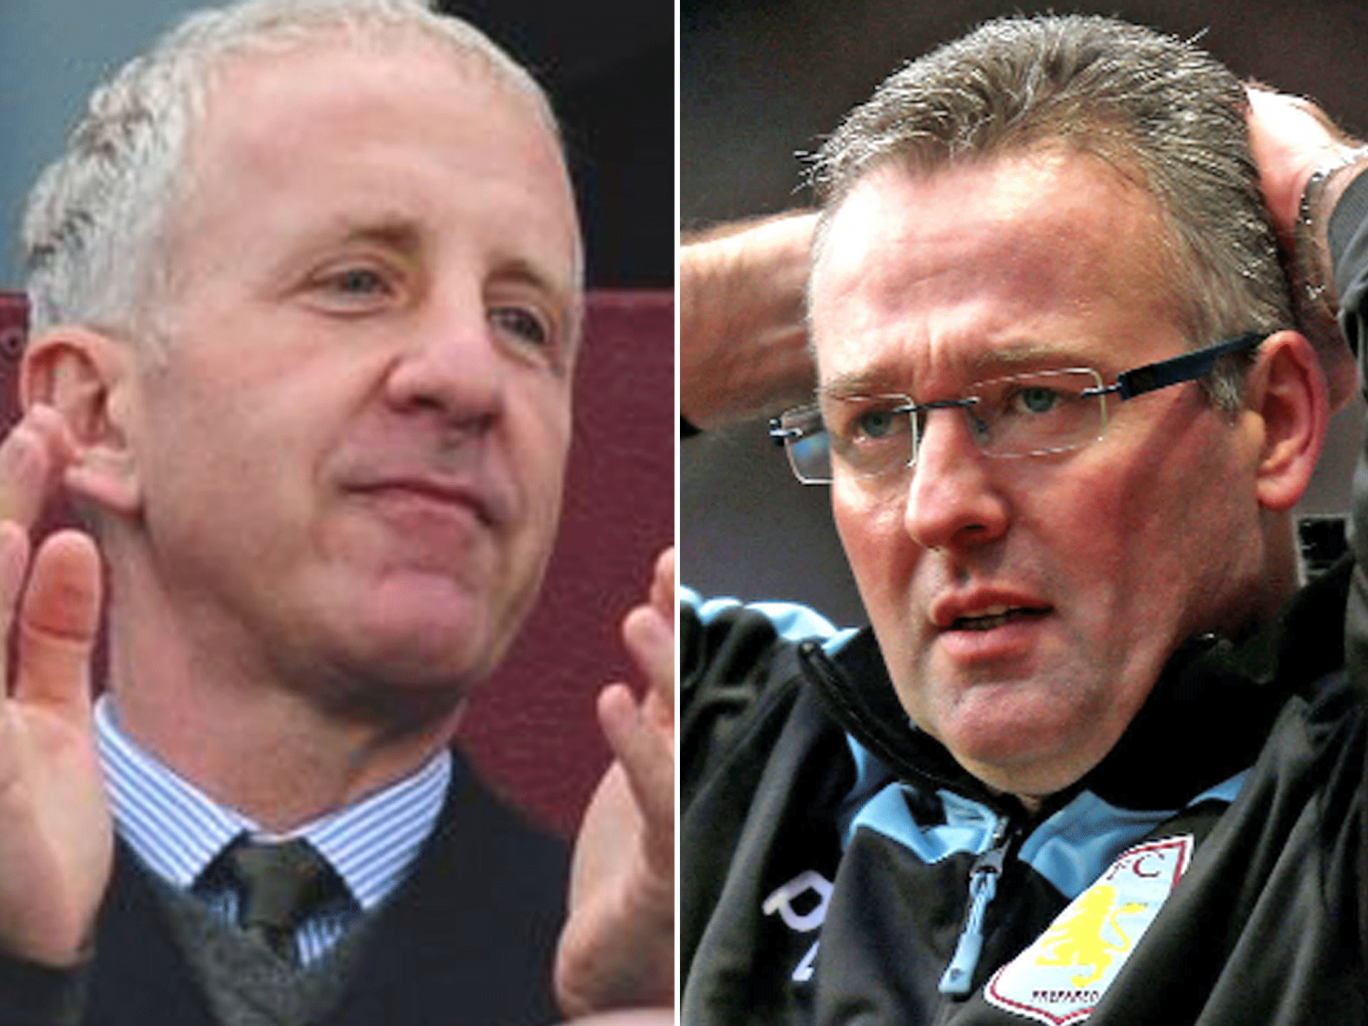 Aston Villa owner Randy Lerner (left) has reiterated his support for manager Paul Lambert ahead of tomorrow's crunch Barclays Premier League clash with fellow strugglers Newcastle